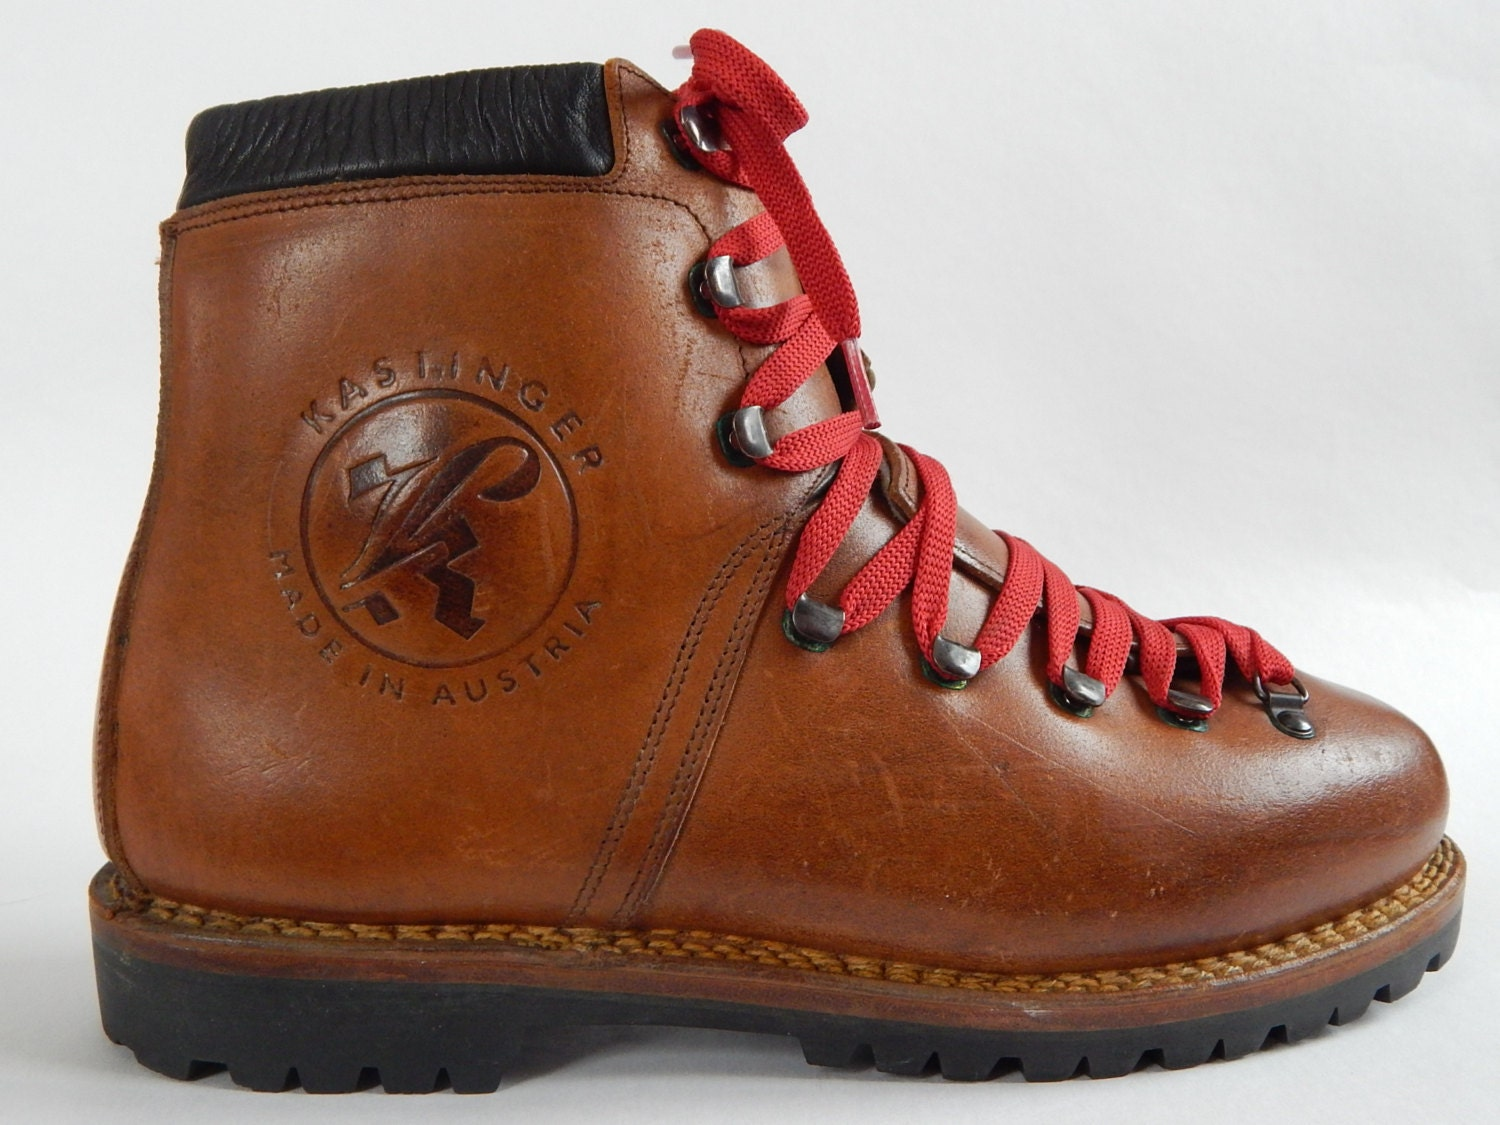 Vintage Mountaineering Boots Kastinger Leather Mountain Hiking